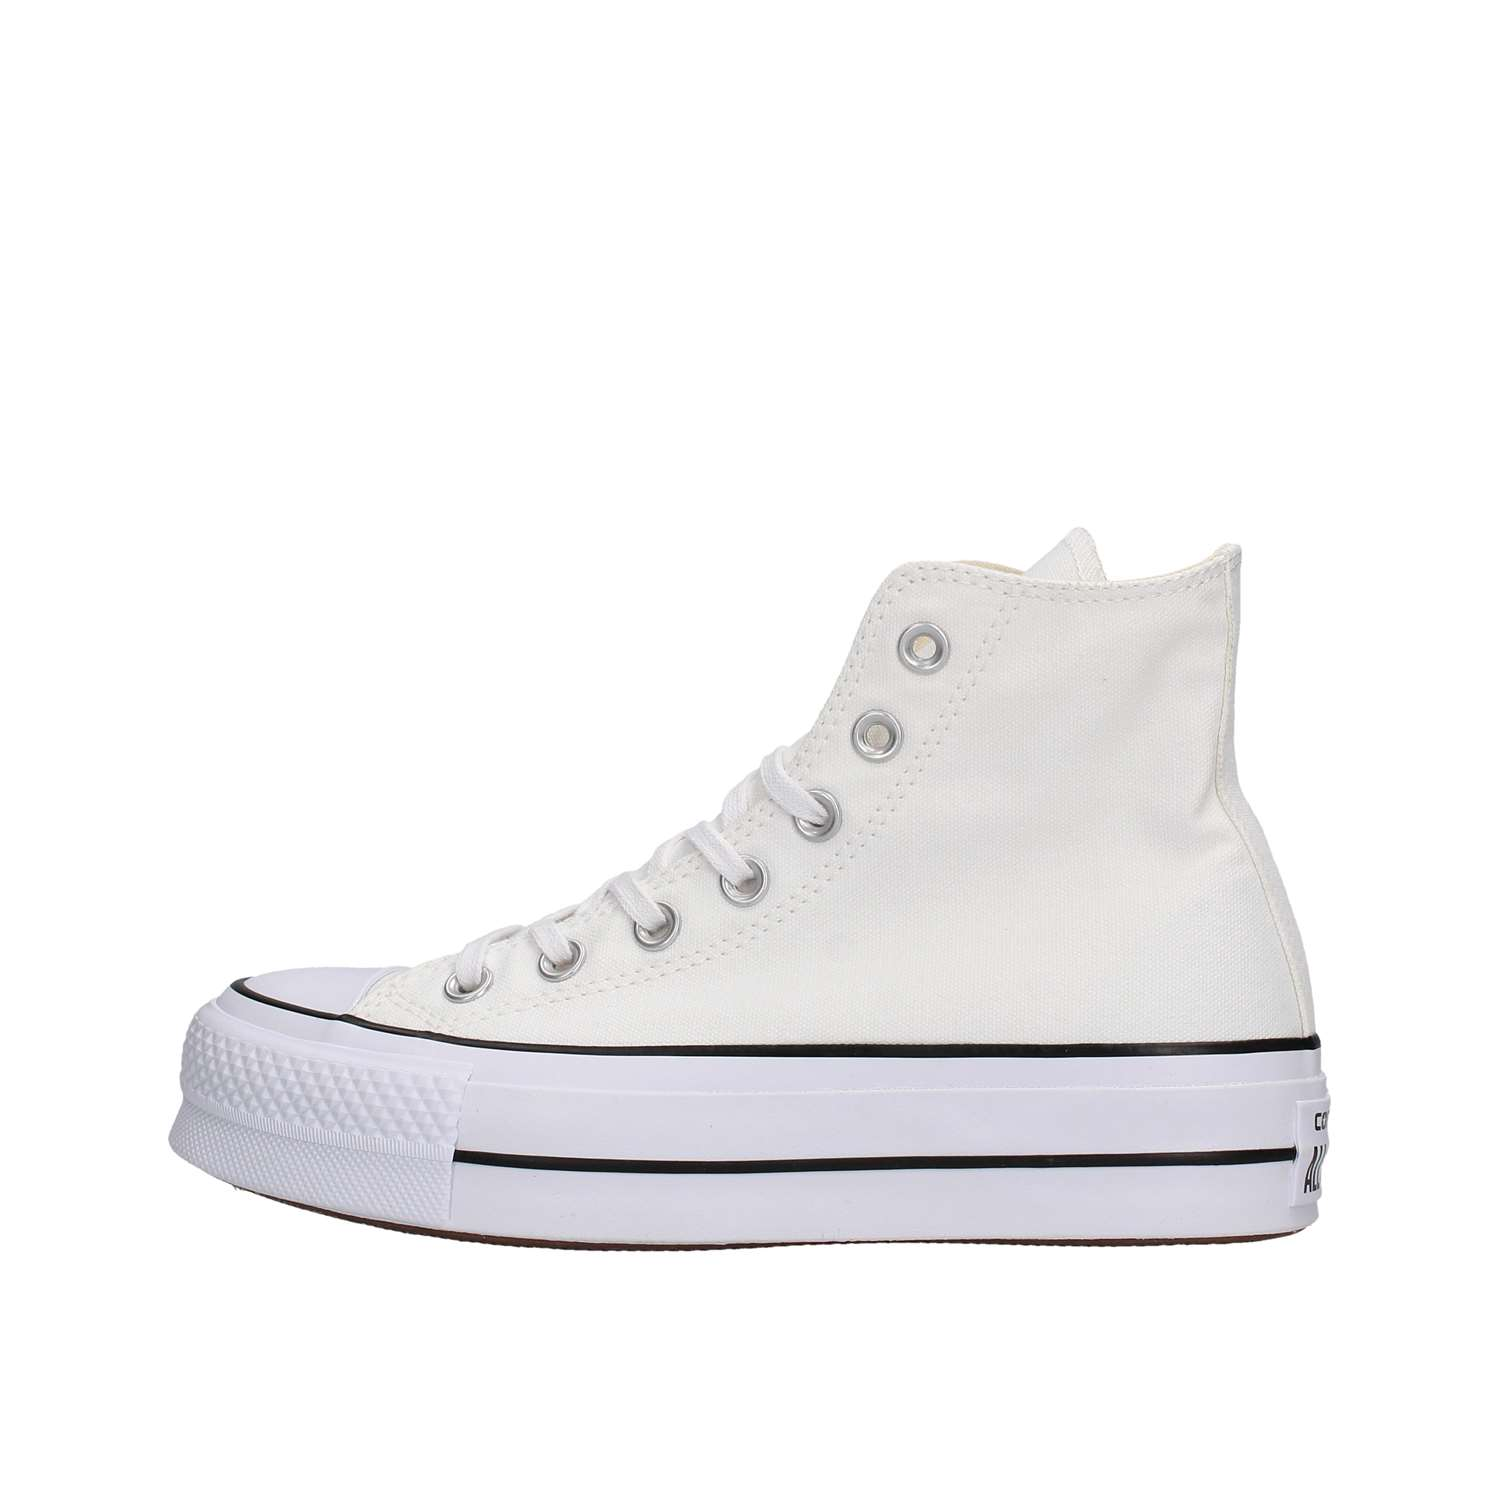 2converse all star platform bianche